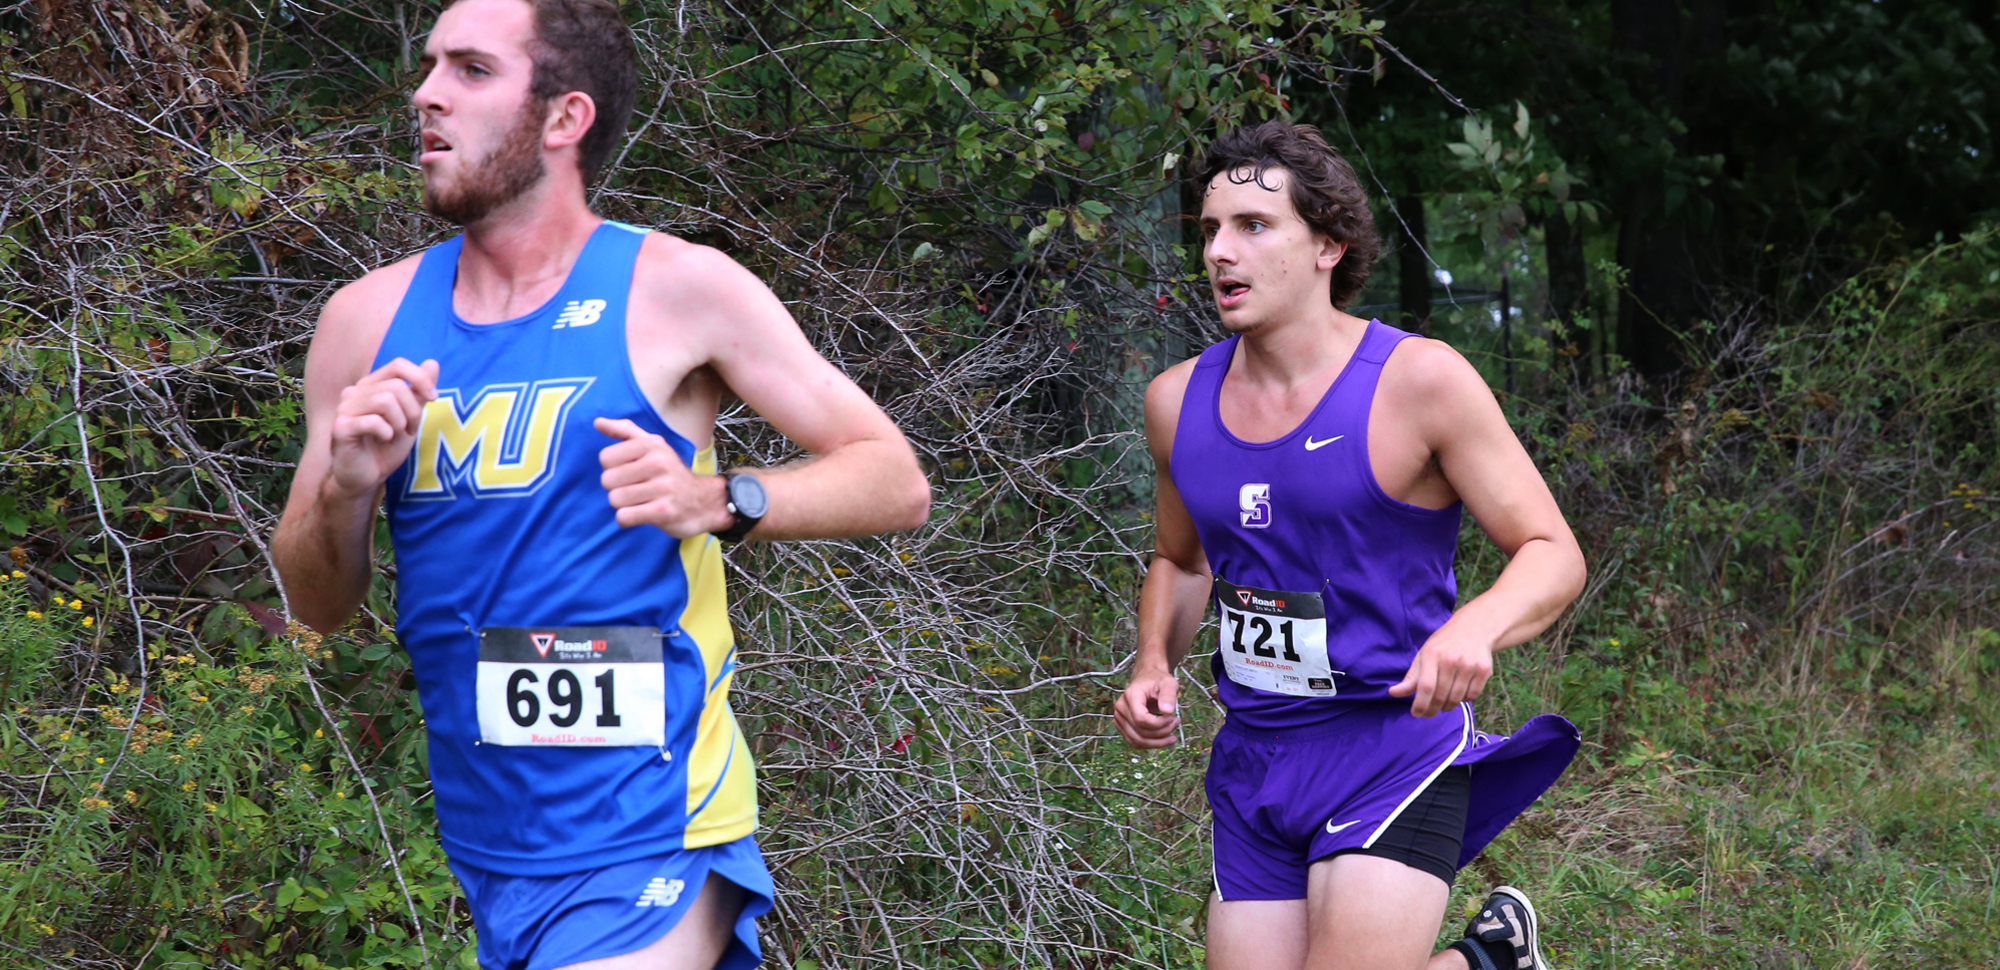 Senior Schuyler Smith was the Royals' top finisher in Friday's Misericordia Invitational.